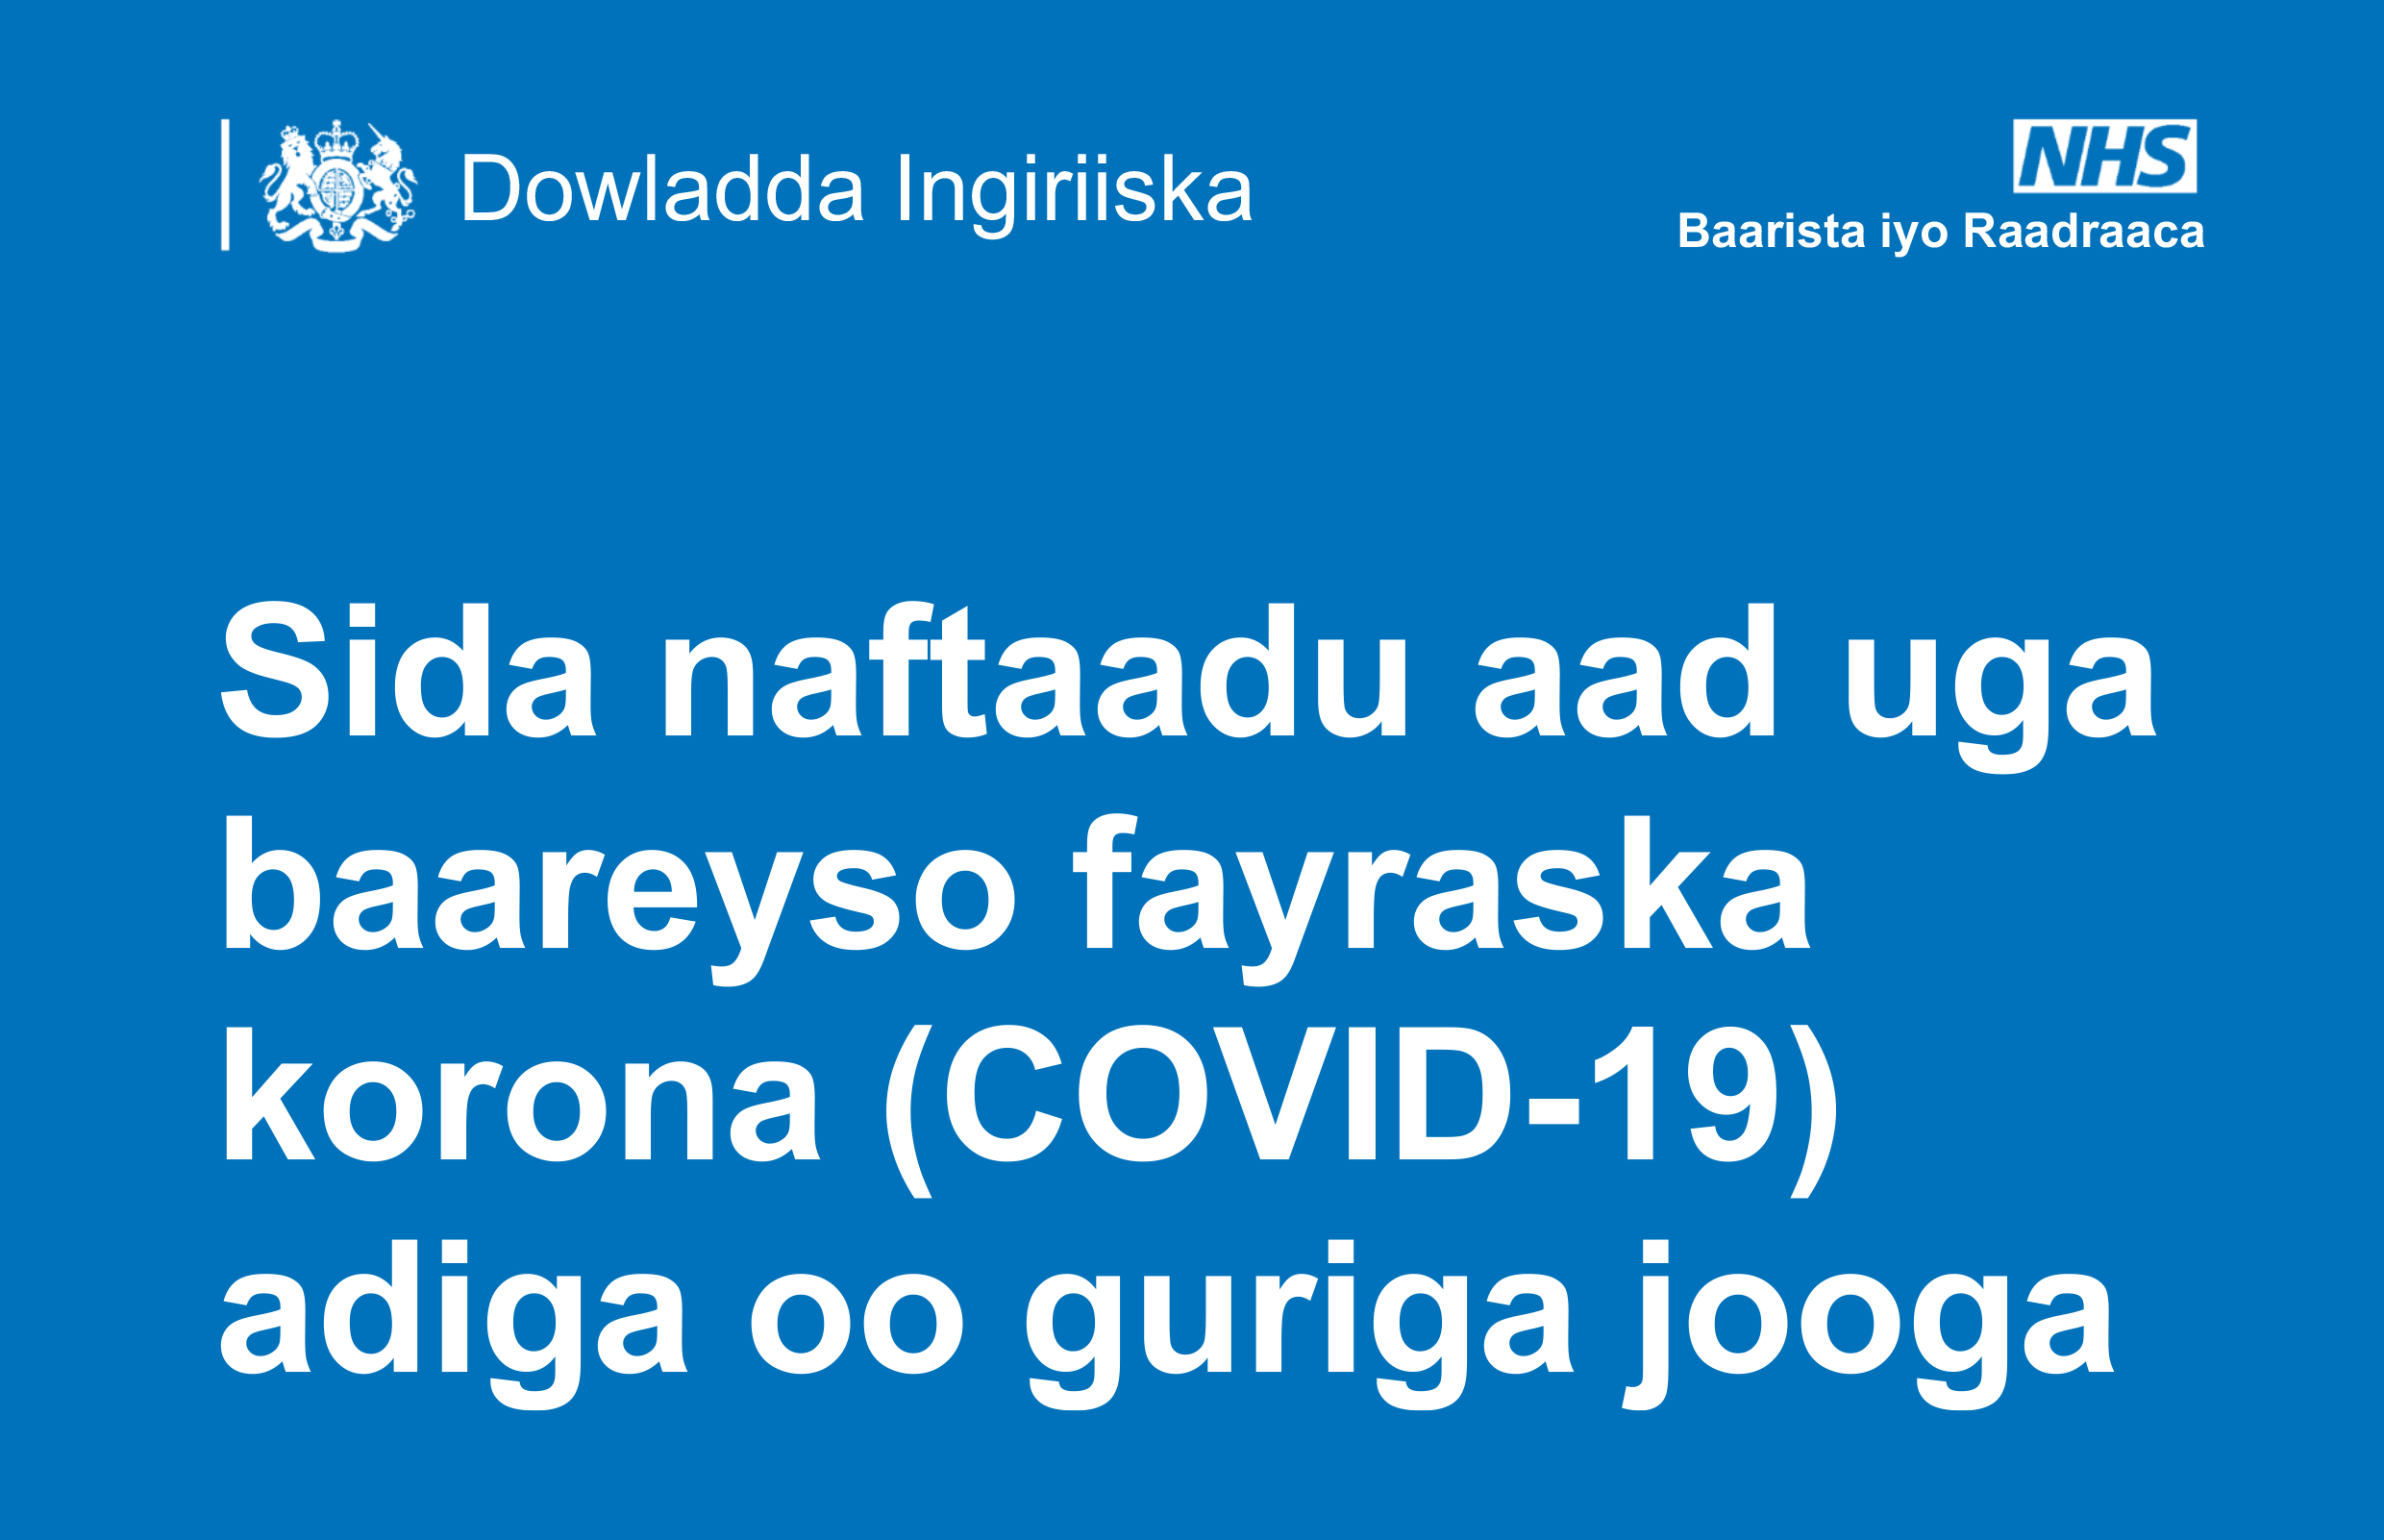 How to test yourself for coronavirus (COVID-19) at home - Somali